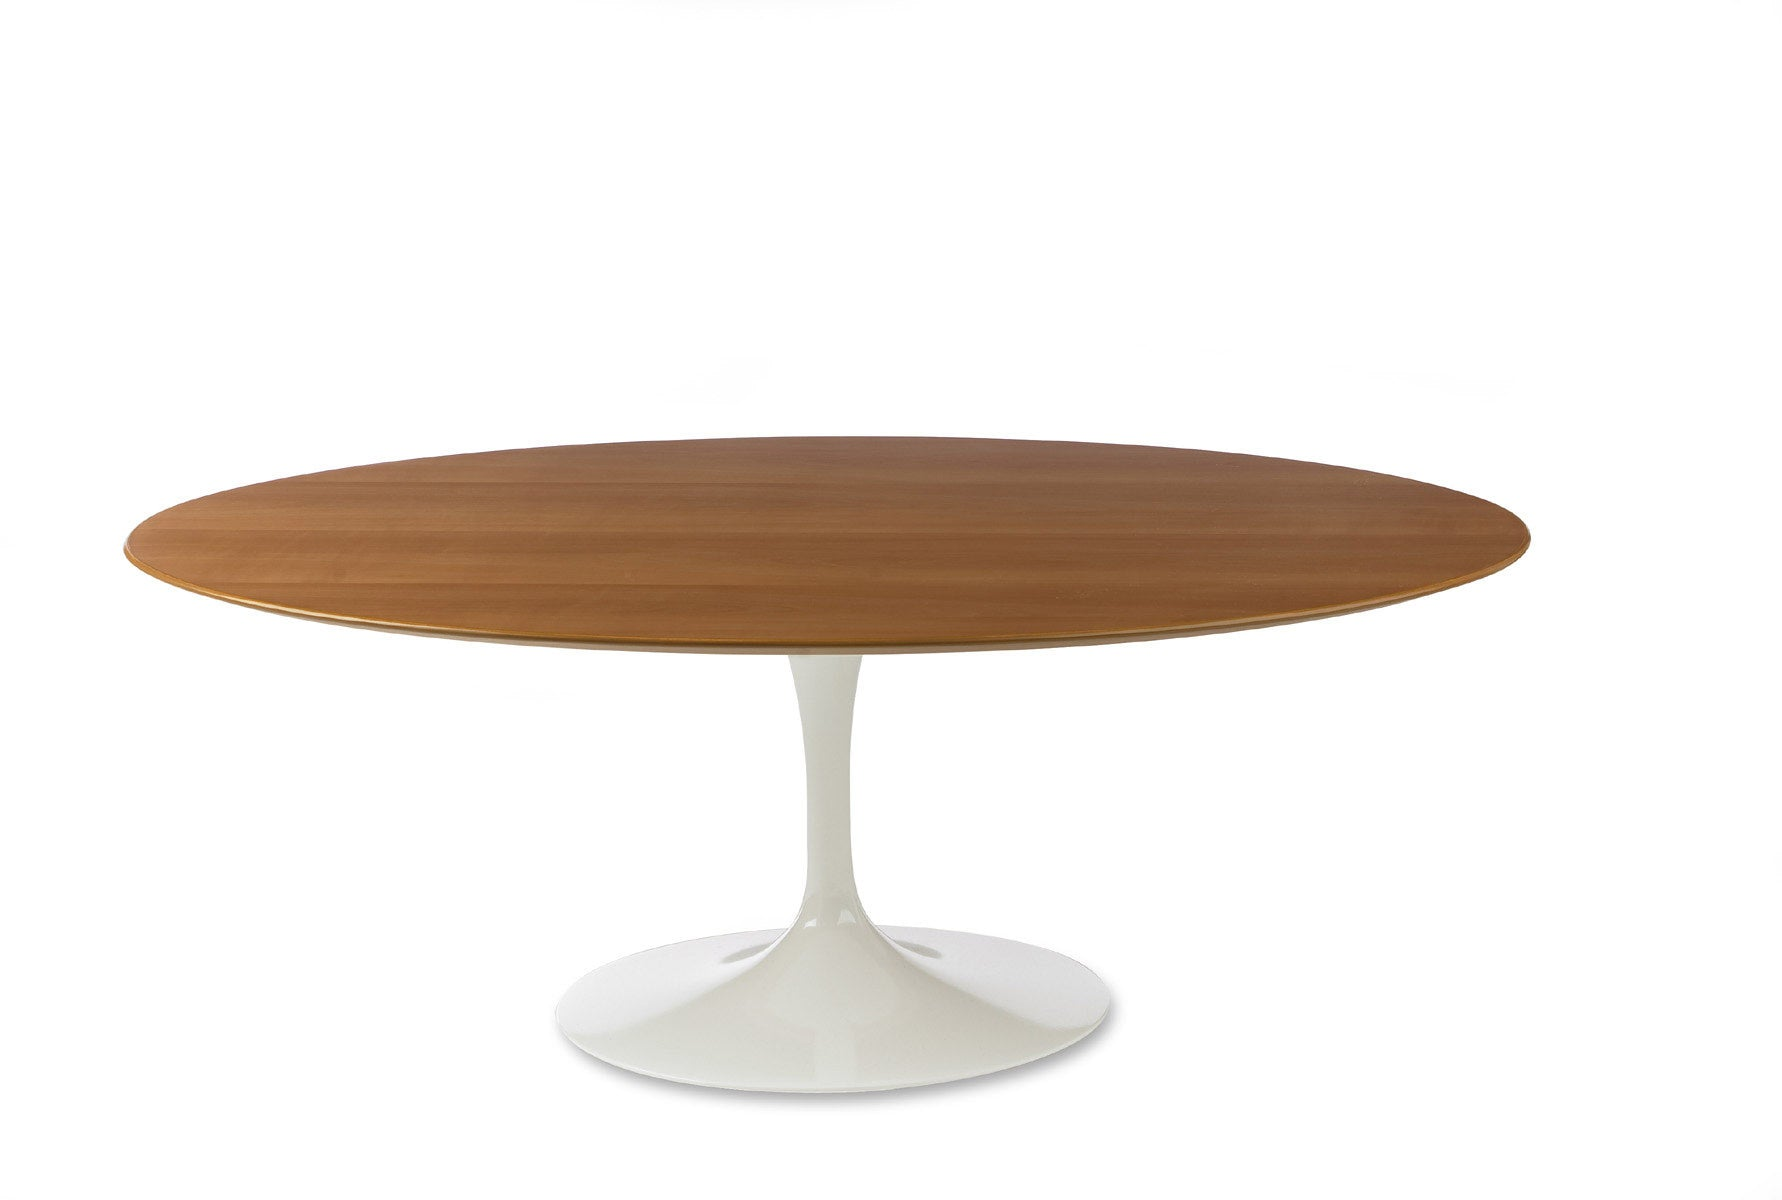 Saarinen Tulip Table, Veneer Top